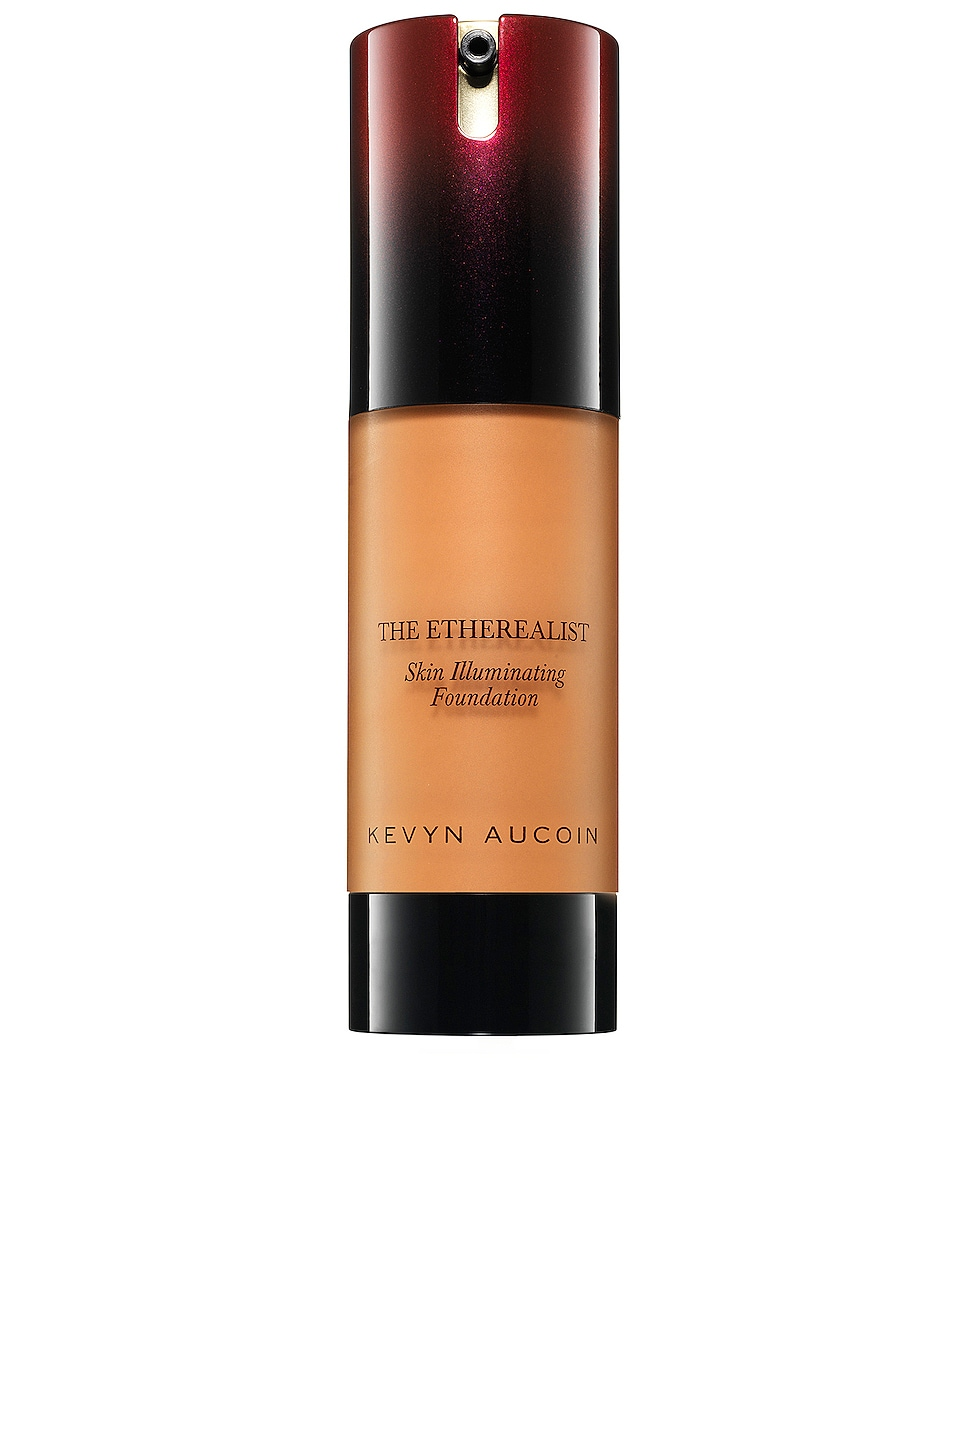 Kevyn Aucoin The Etherealist Skin Illuminating Foundation in Deep 14